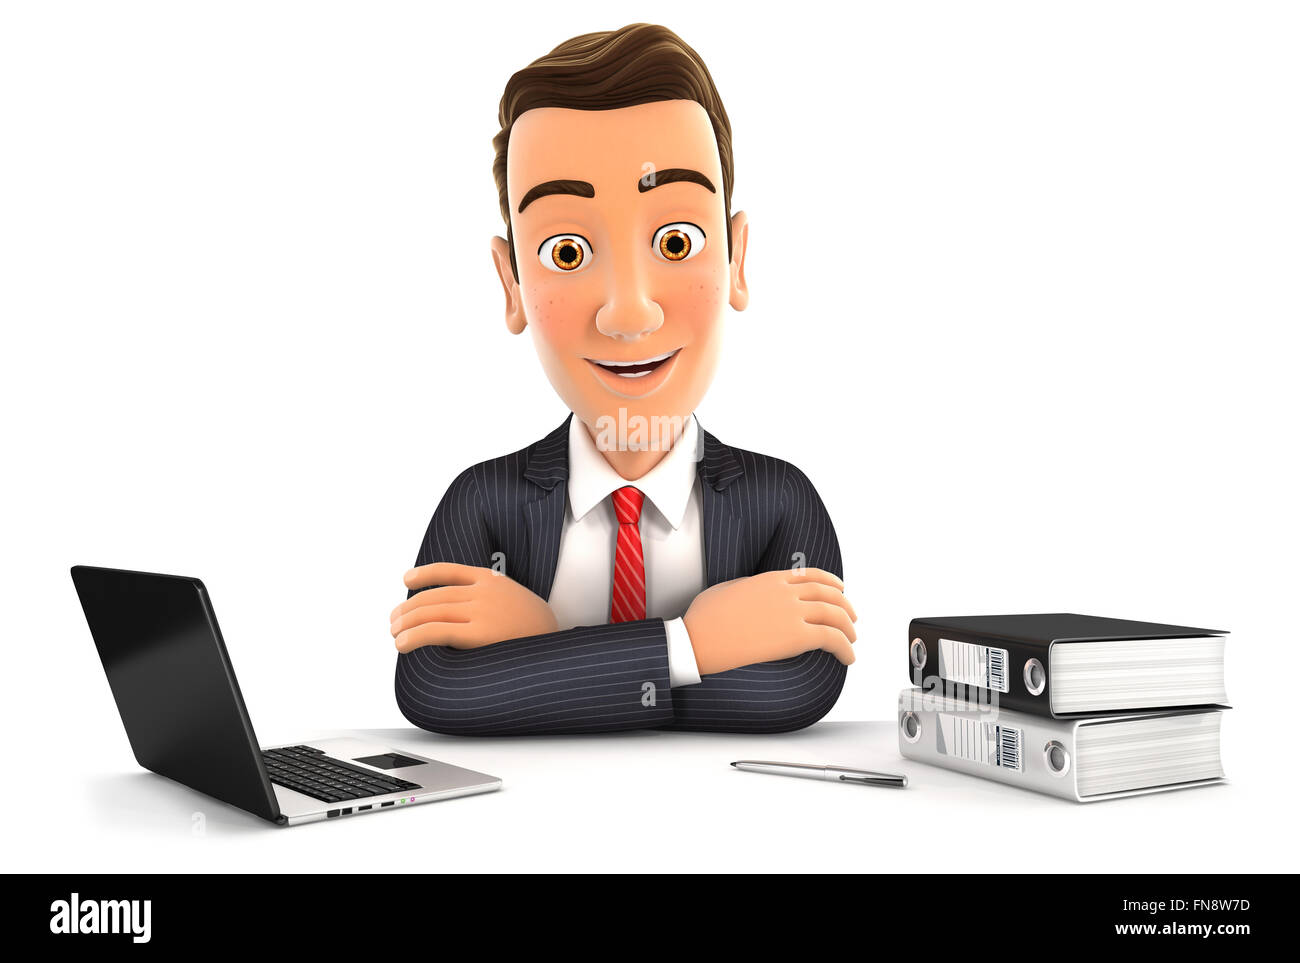 3d businessman sitting at desk with laptop and ring binder, isolated white background Stock Photo